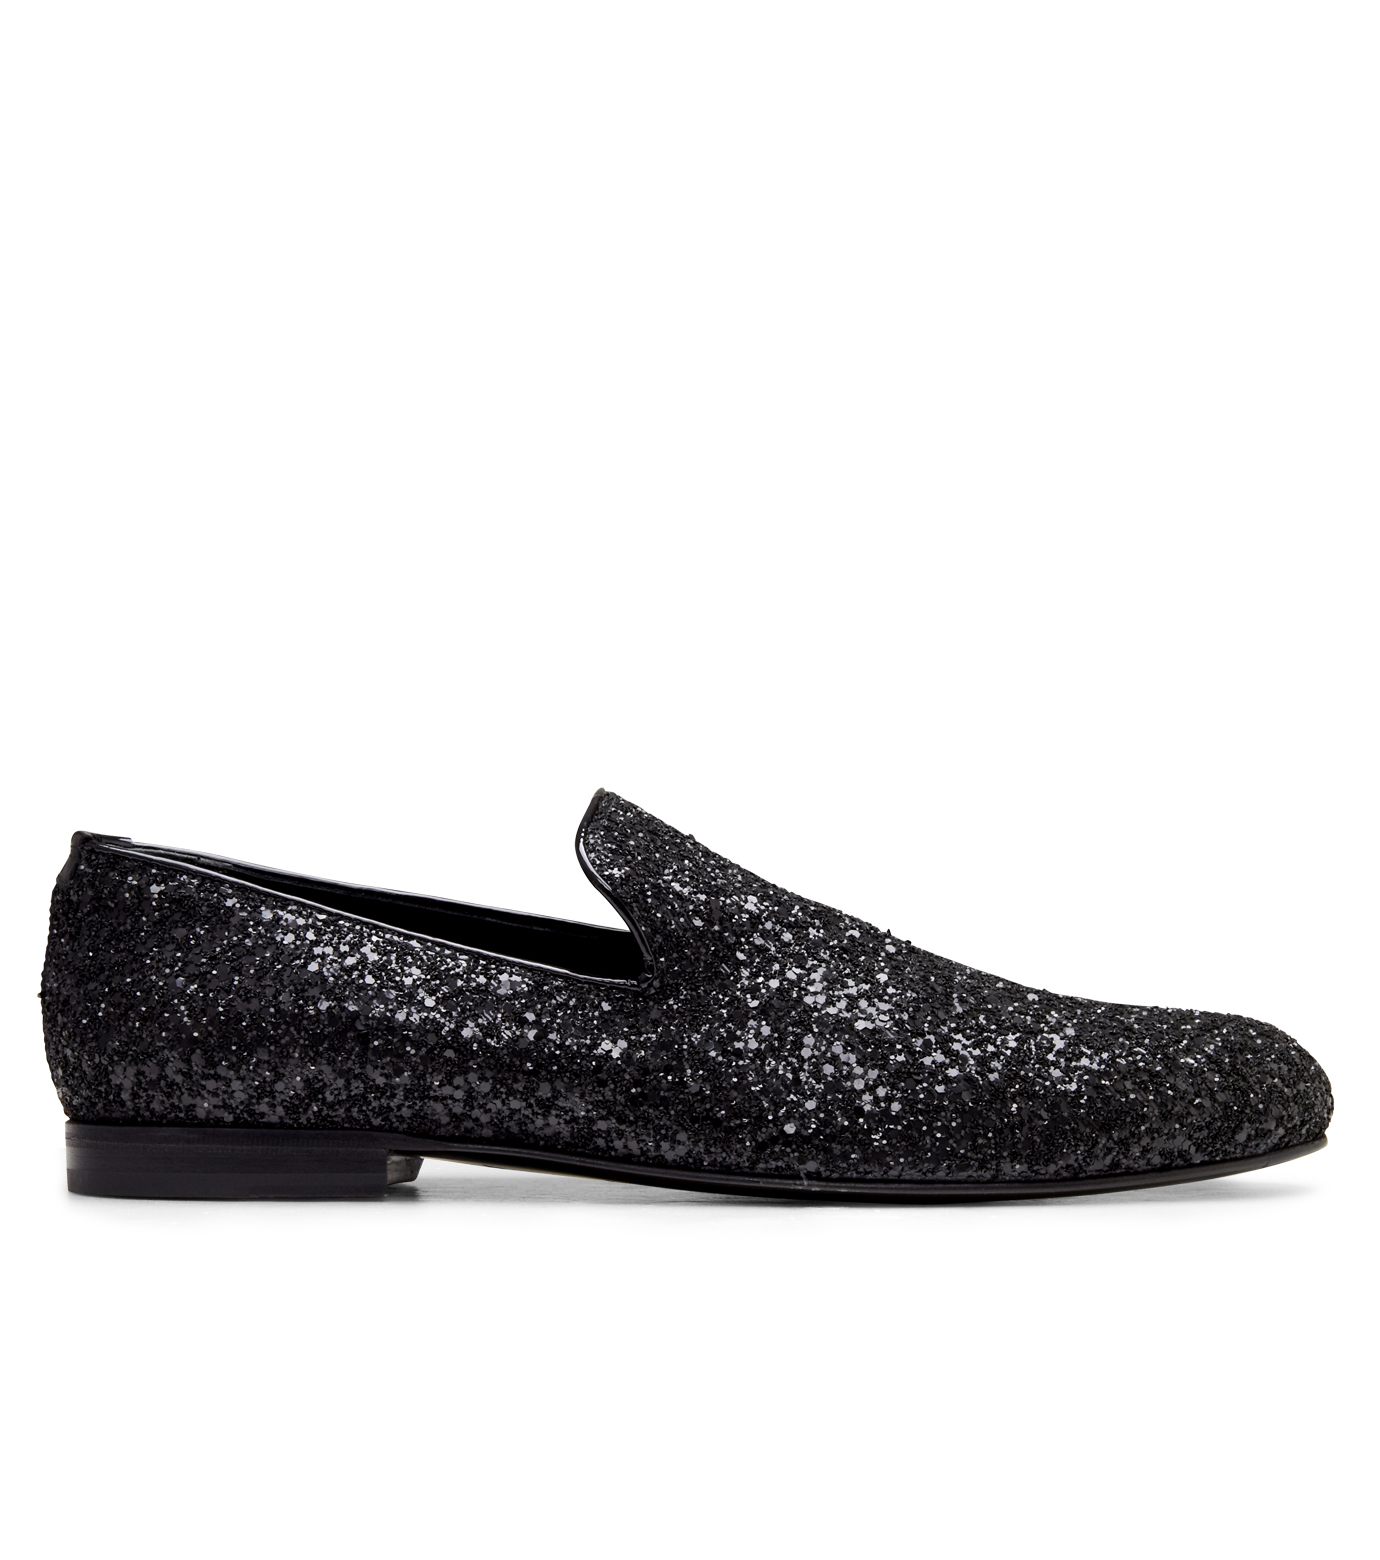 Jimmy Choo(ジミーチュウ)のGlitter Shoes-BLACK-SLOANE-CGF 拡大詳細画像1